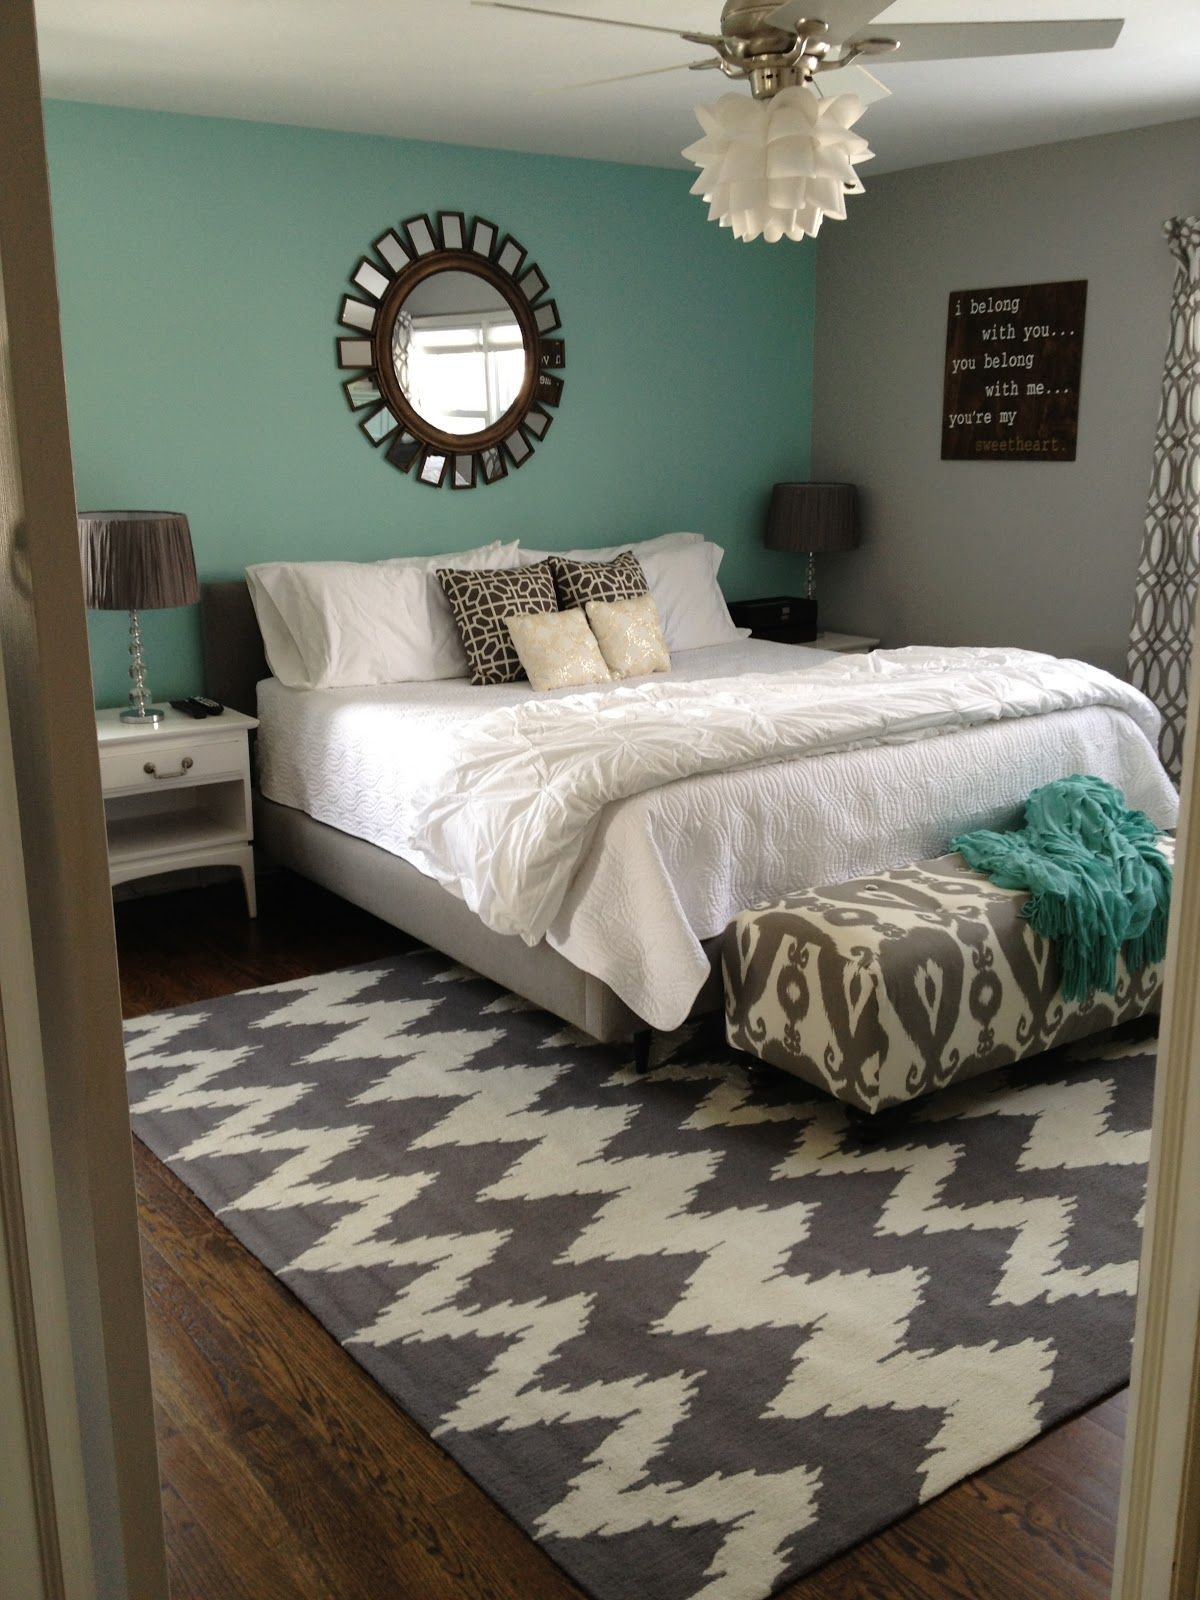 15 tiny bedrooms to inspire you | teal, gray and teal accent walls